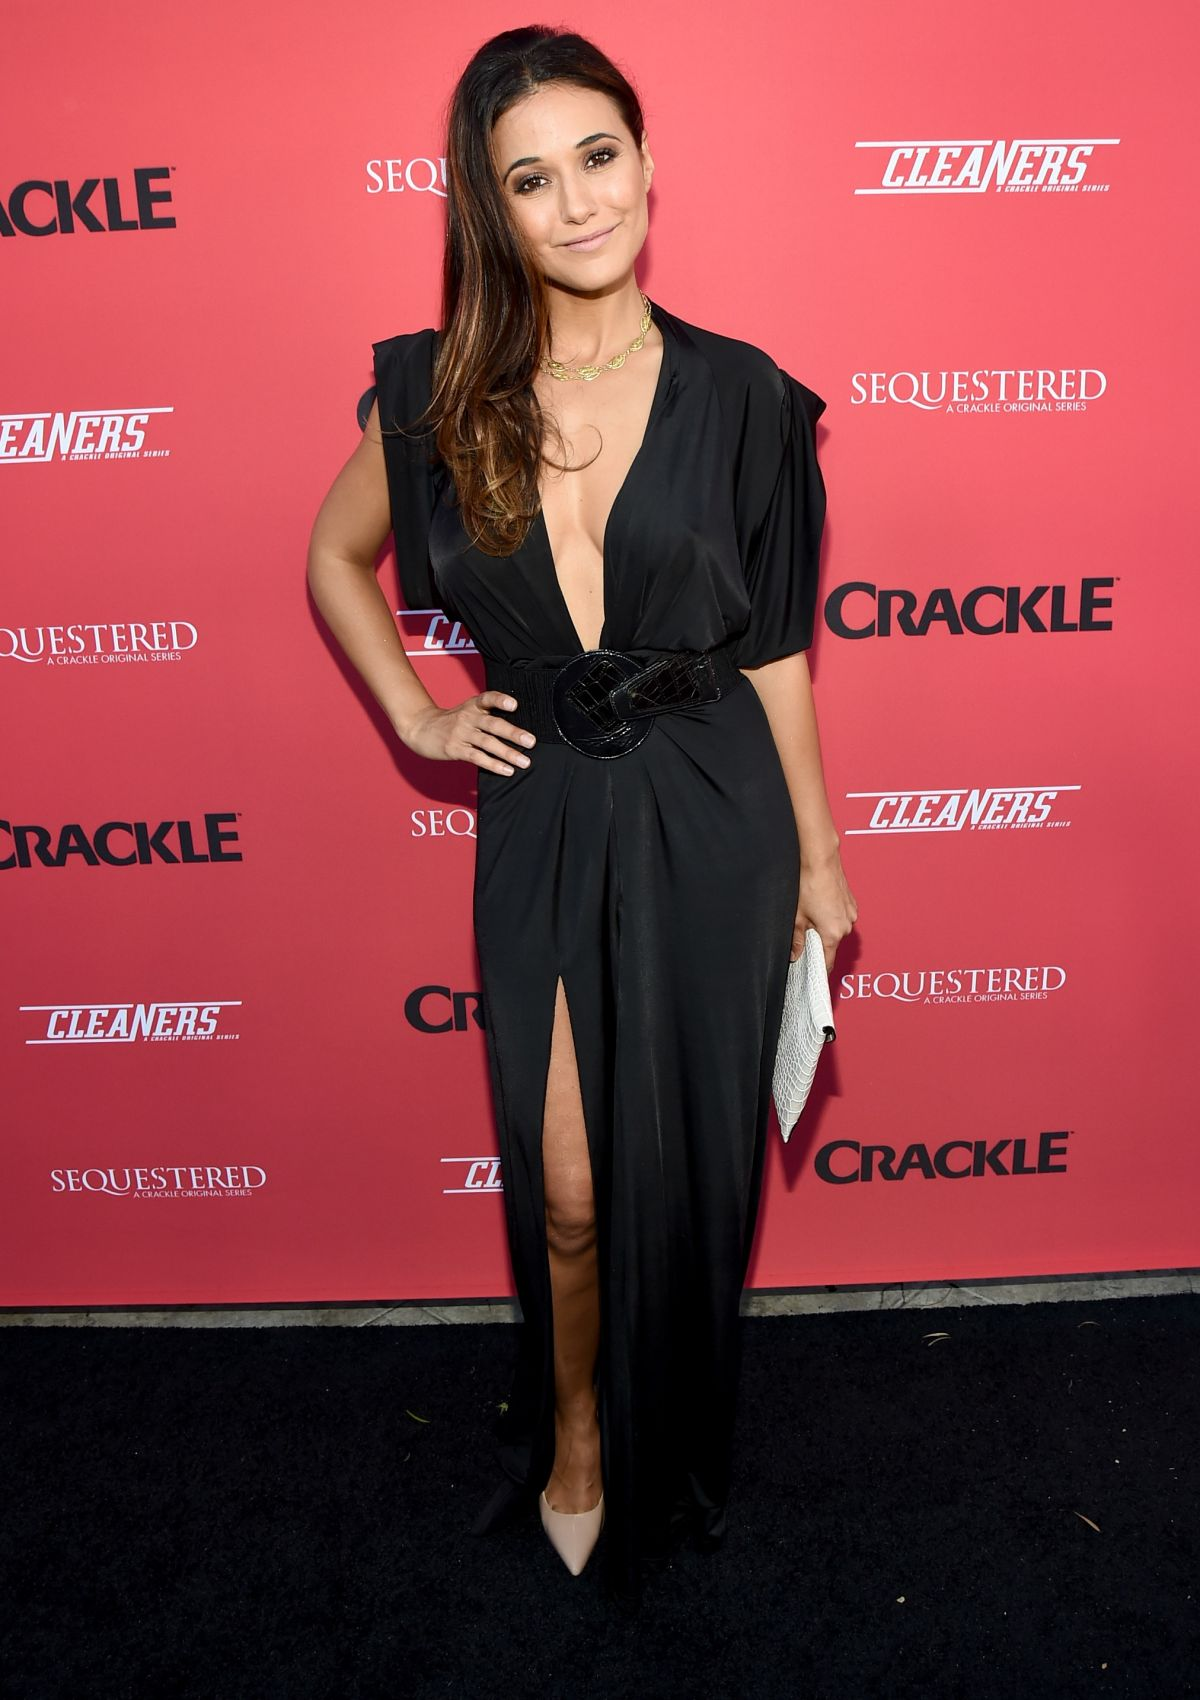 Emmanuelle Chriqui At Sequestered And Cleaners Premieres